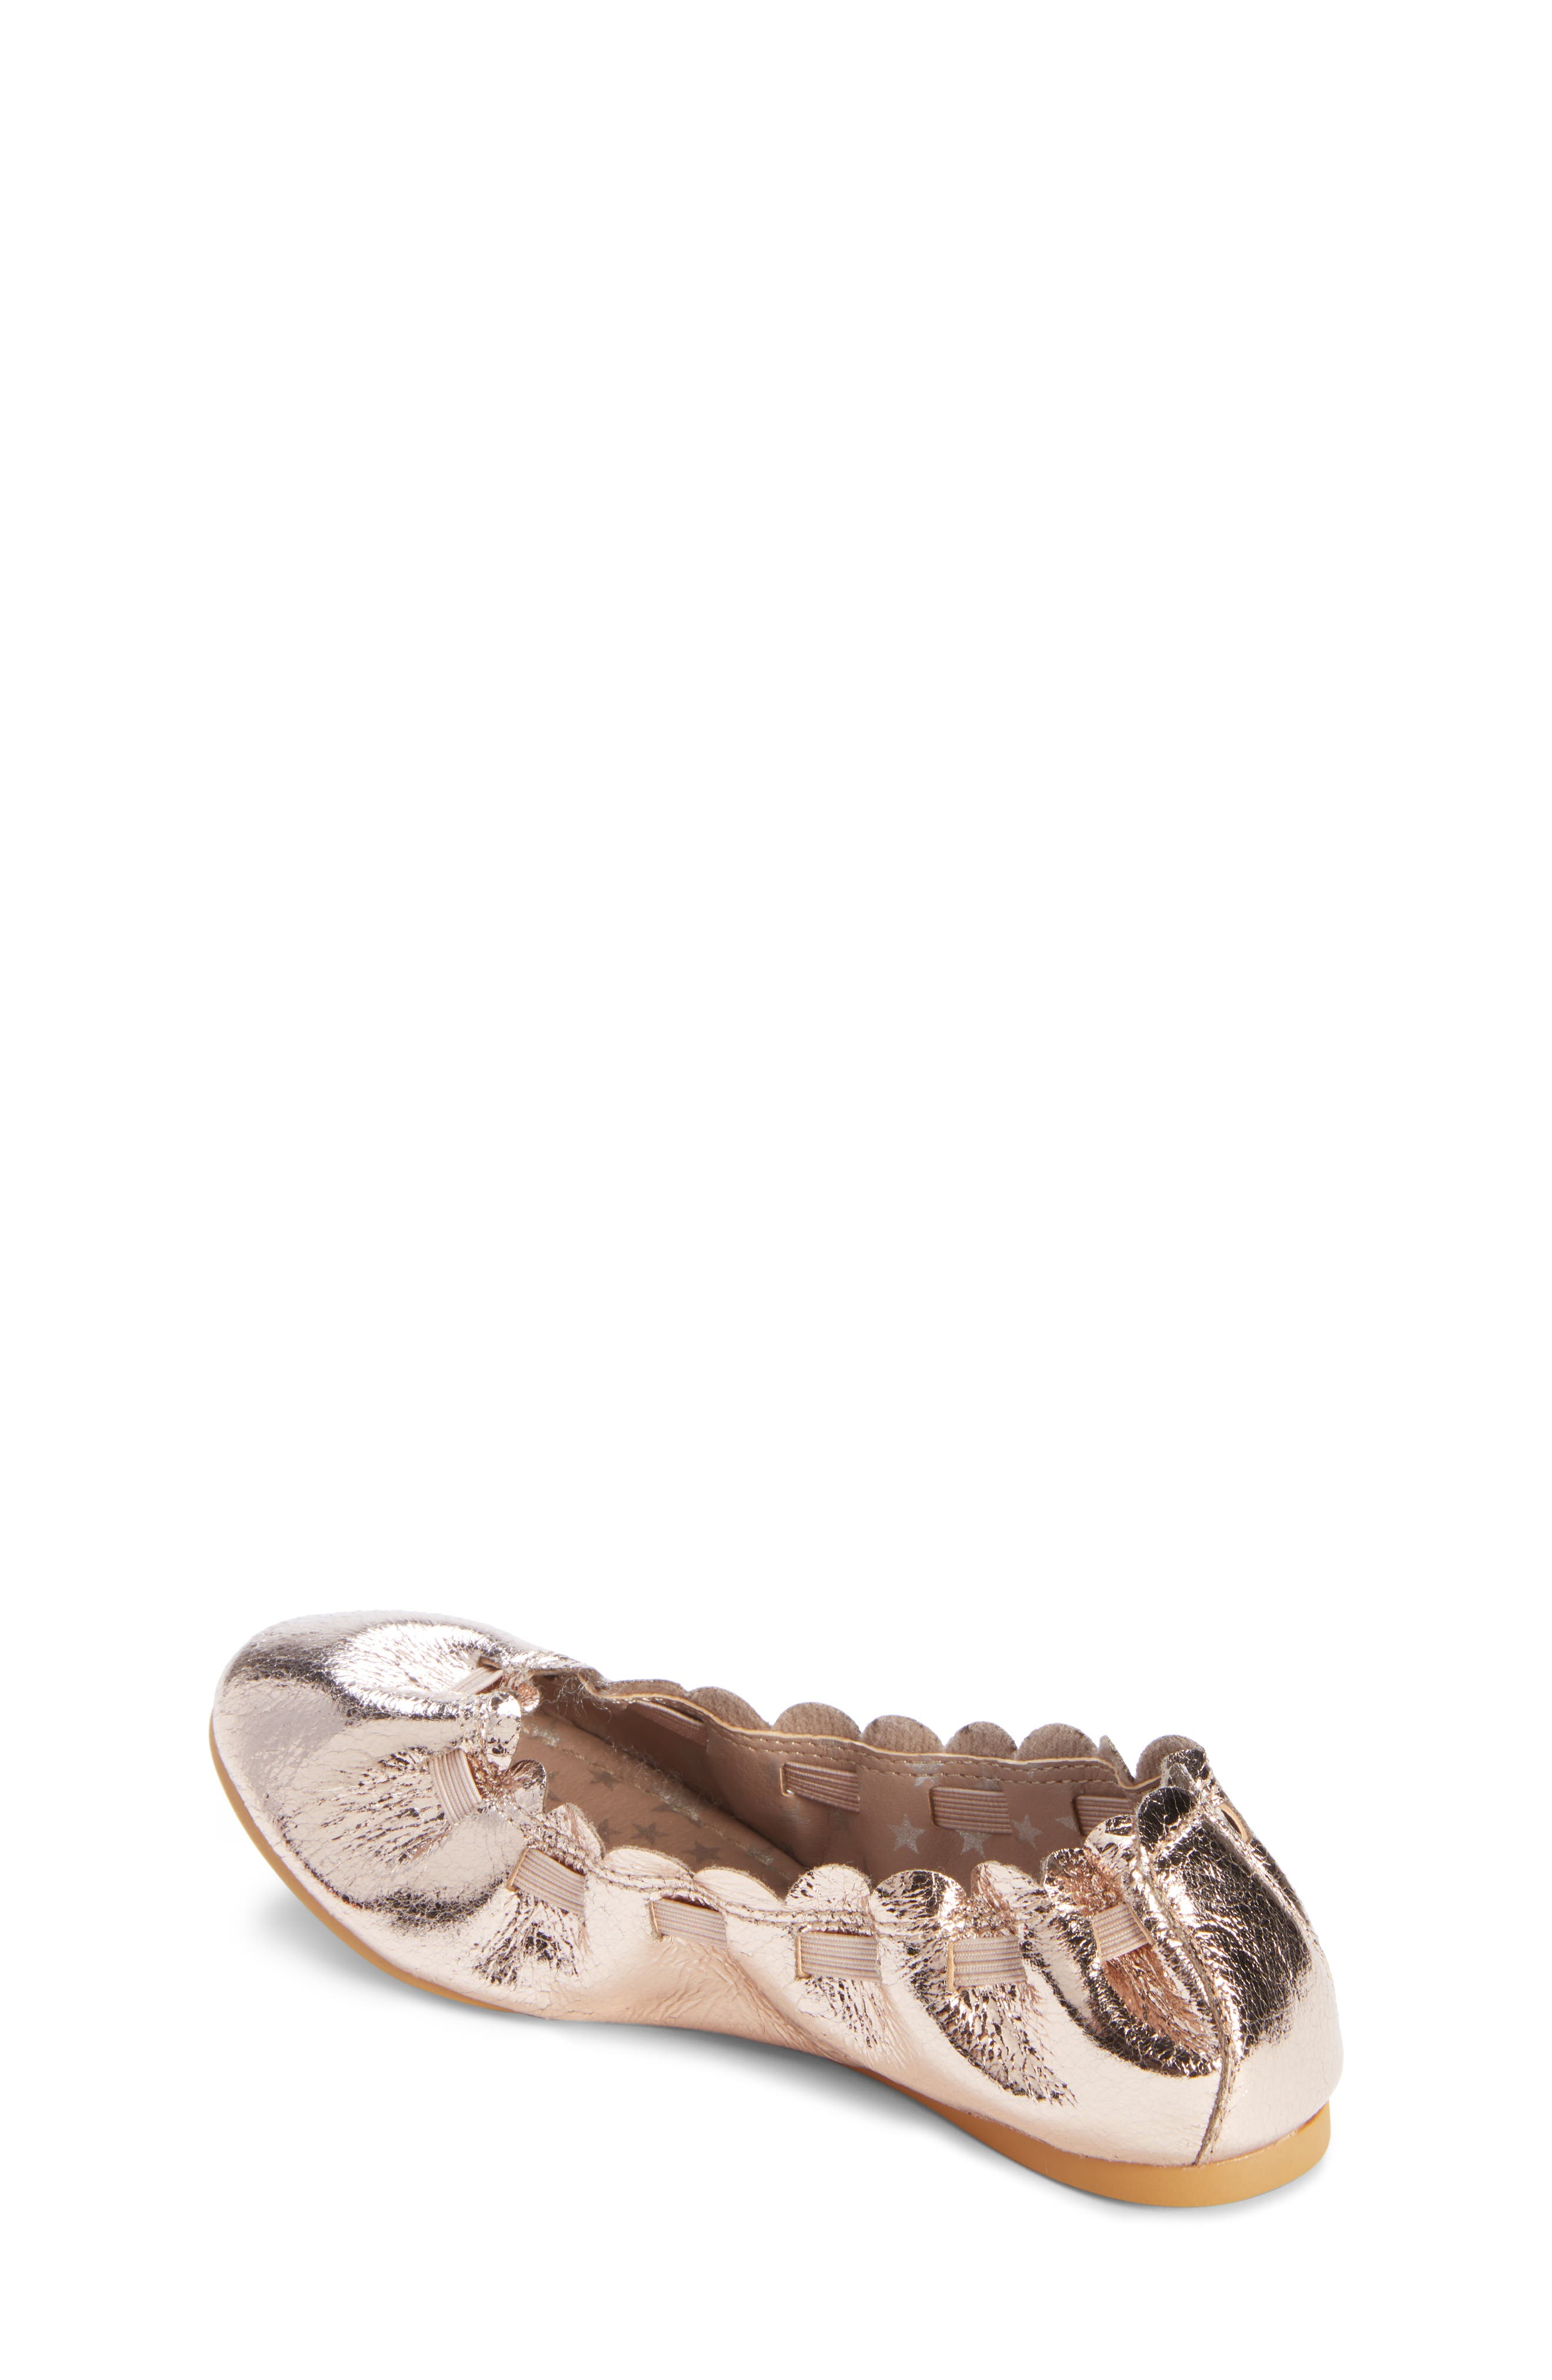 Scalloped Ballet Flat,                             Alternate thumbnail 2, color,                             ROSE GOLD CRACKLE FAUX LEATHER